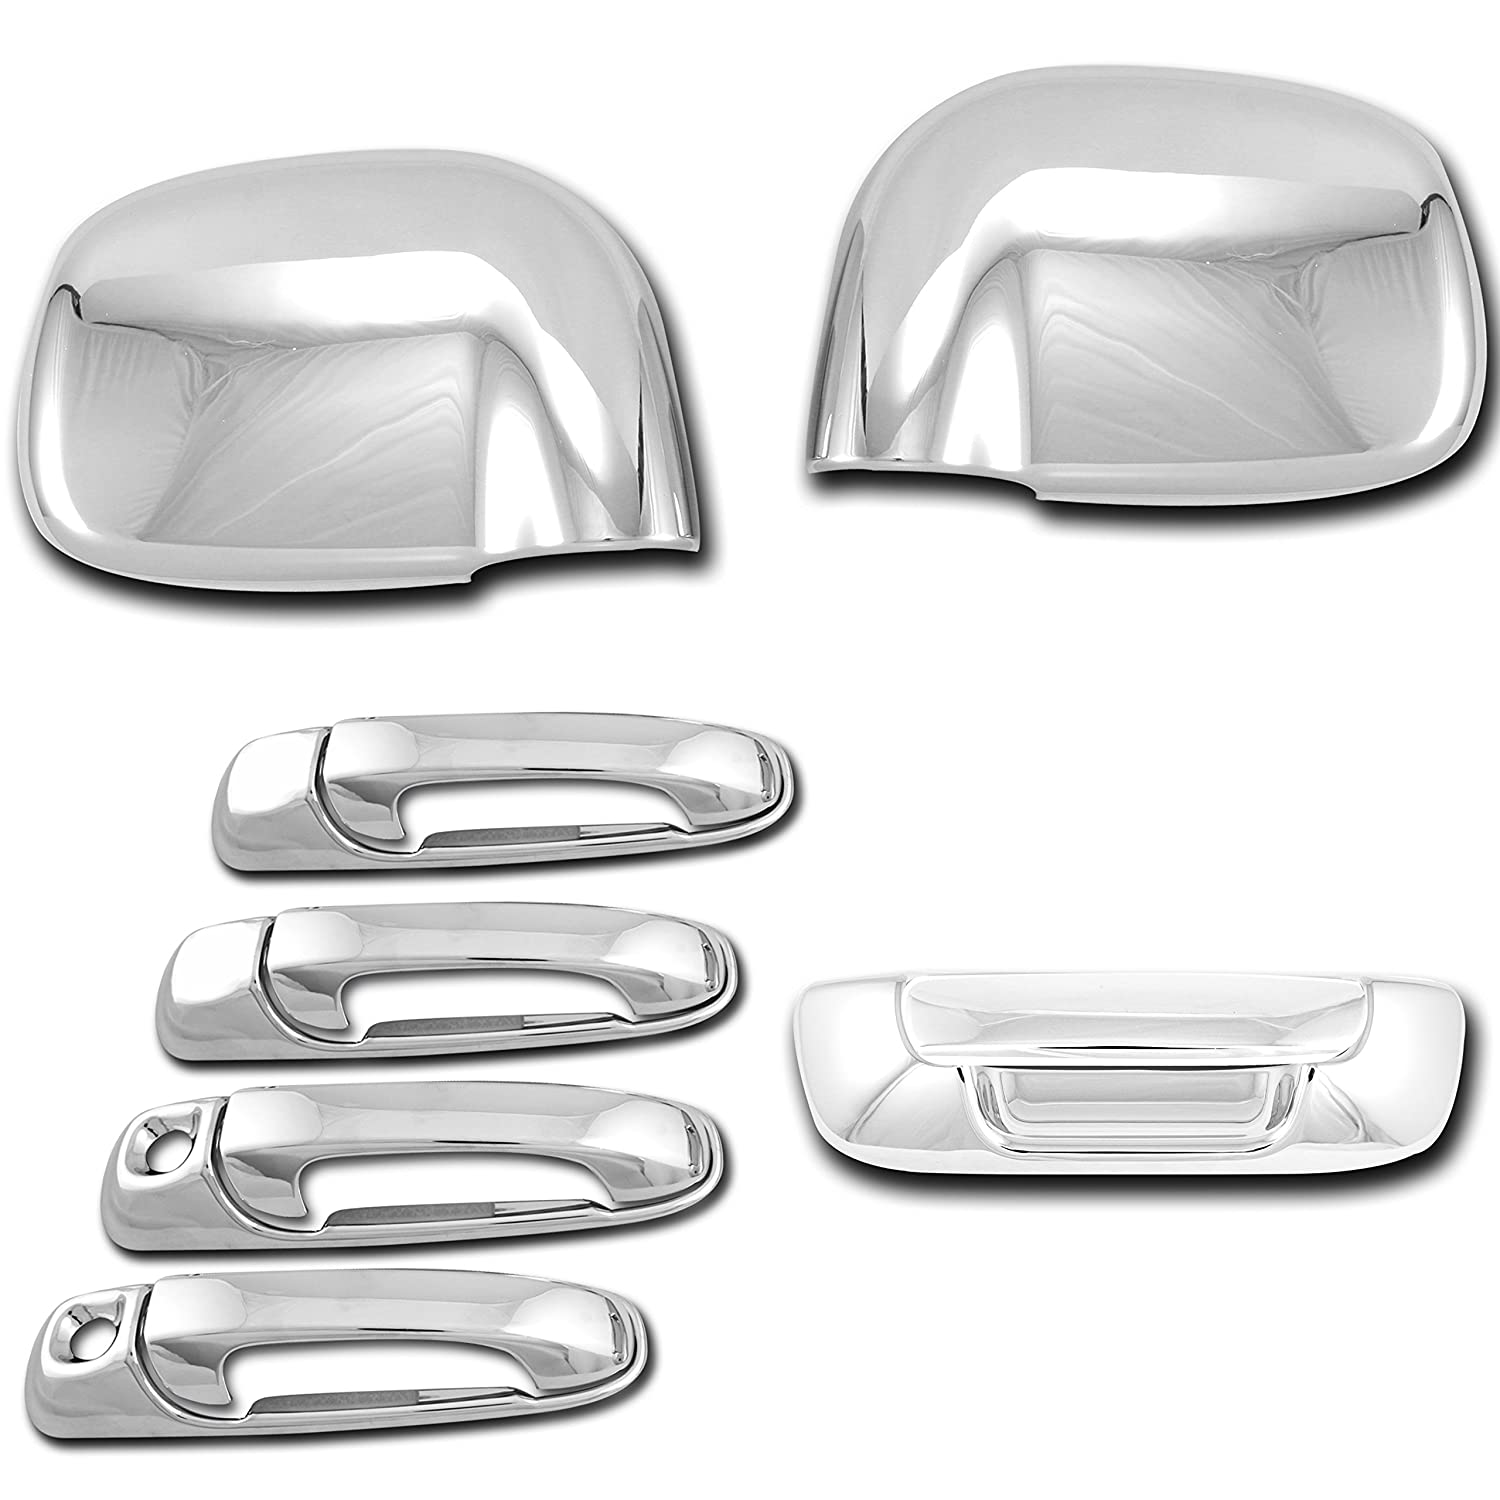 FOR DODGE RAM 1500 02-08 CHROME MIRROR DOOR HANDLE /& TAILGATE COVER W//O KEYHOLE